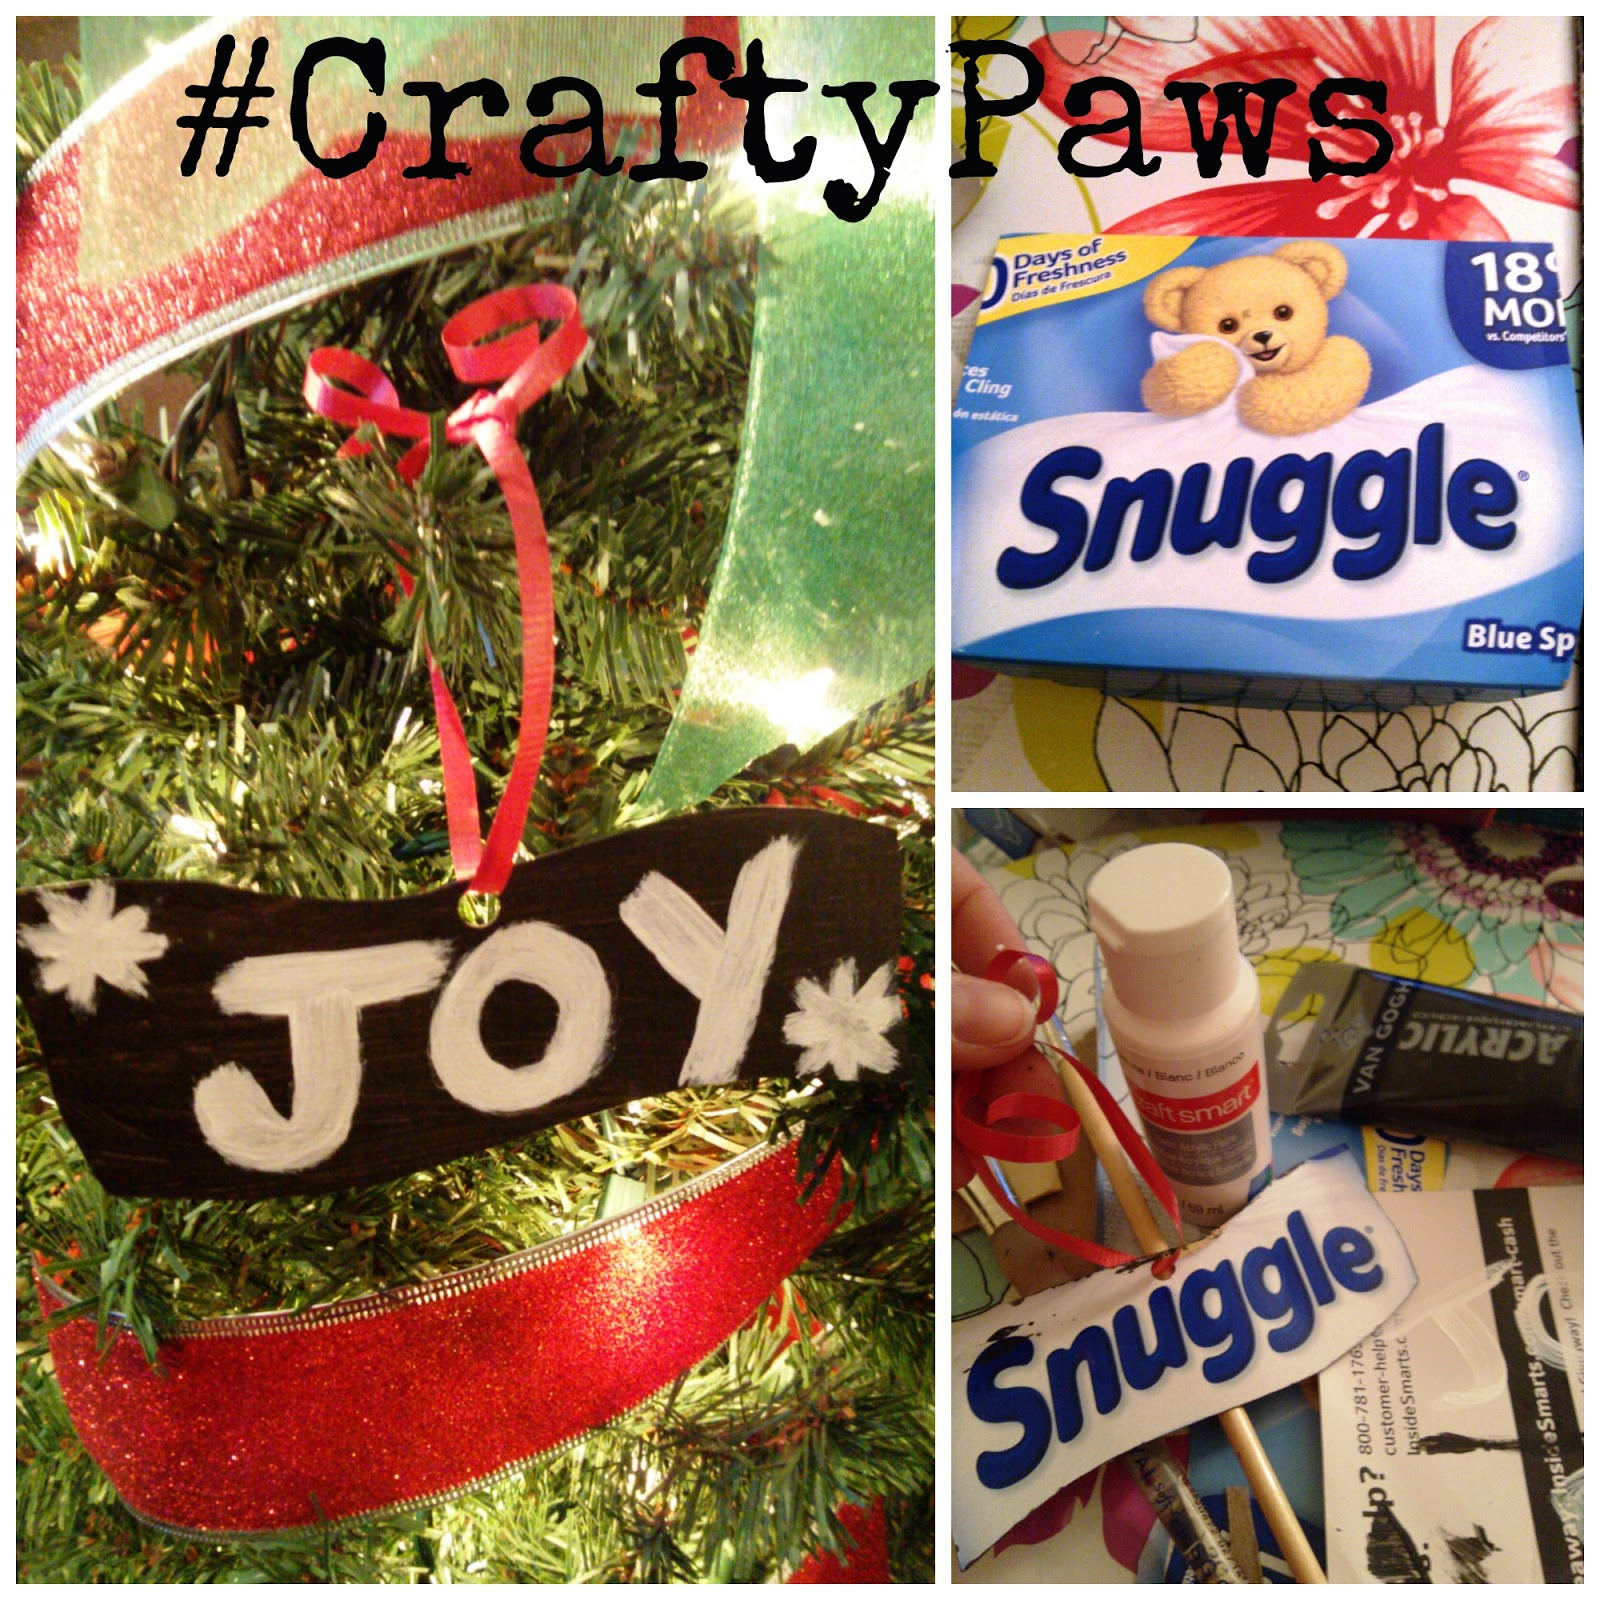 #CraftyPaws Dryer Sheets Box mission with #TeamSnuggle